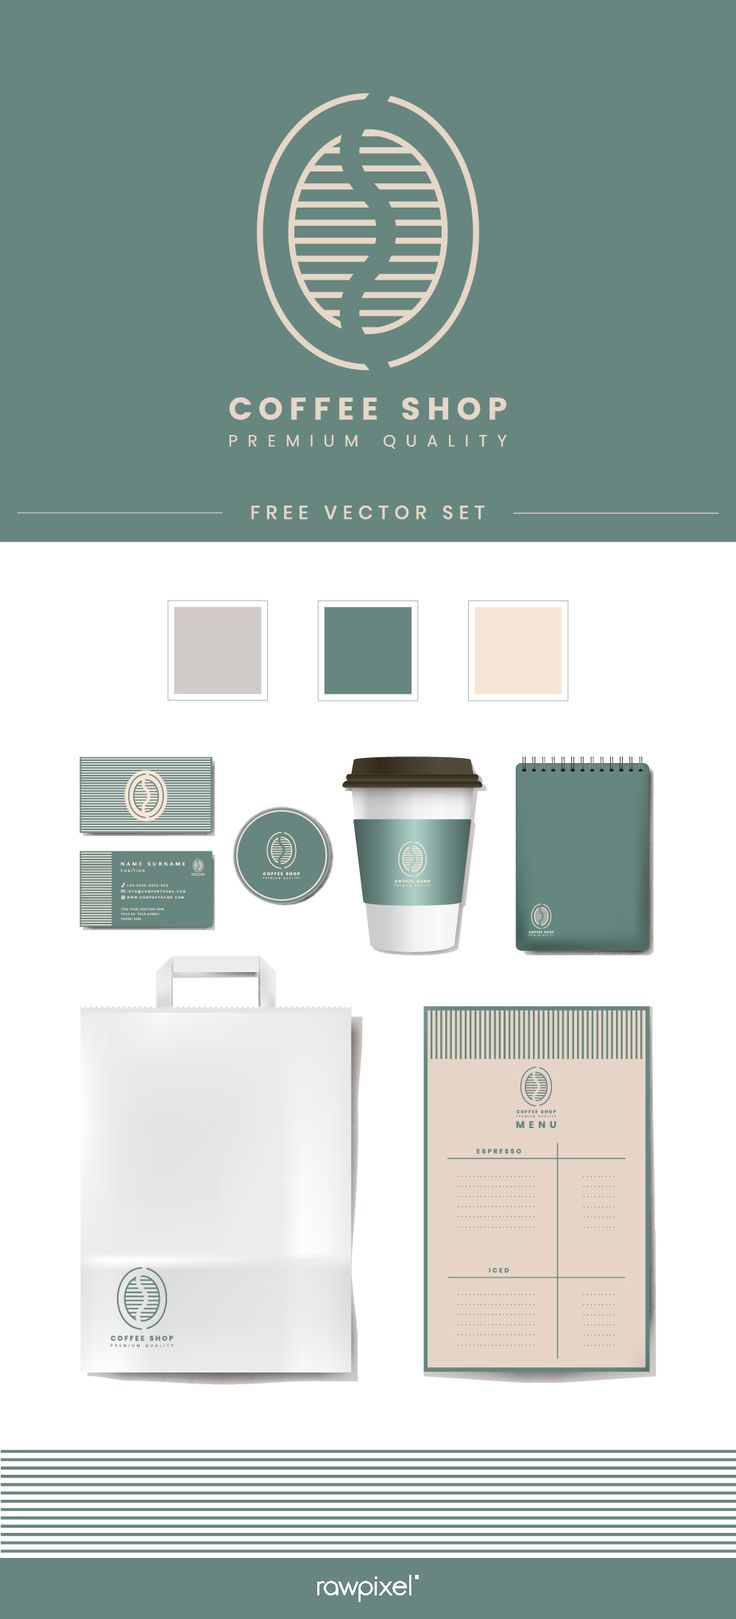 Download These Free Vectors Of Coffee Shop Mockup Set At Rawpixel Com Coffee Shop Logo Design Corporate Identity Mockup Coffee Shop Branding